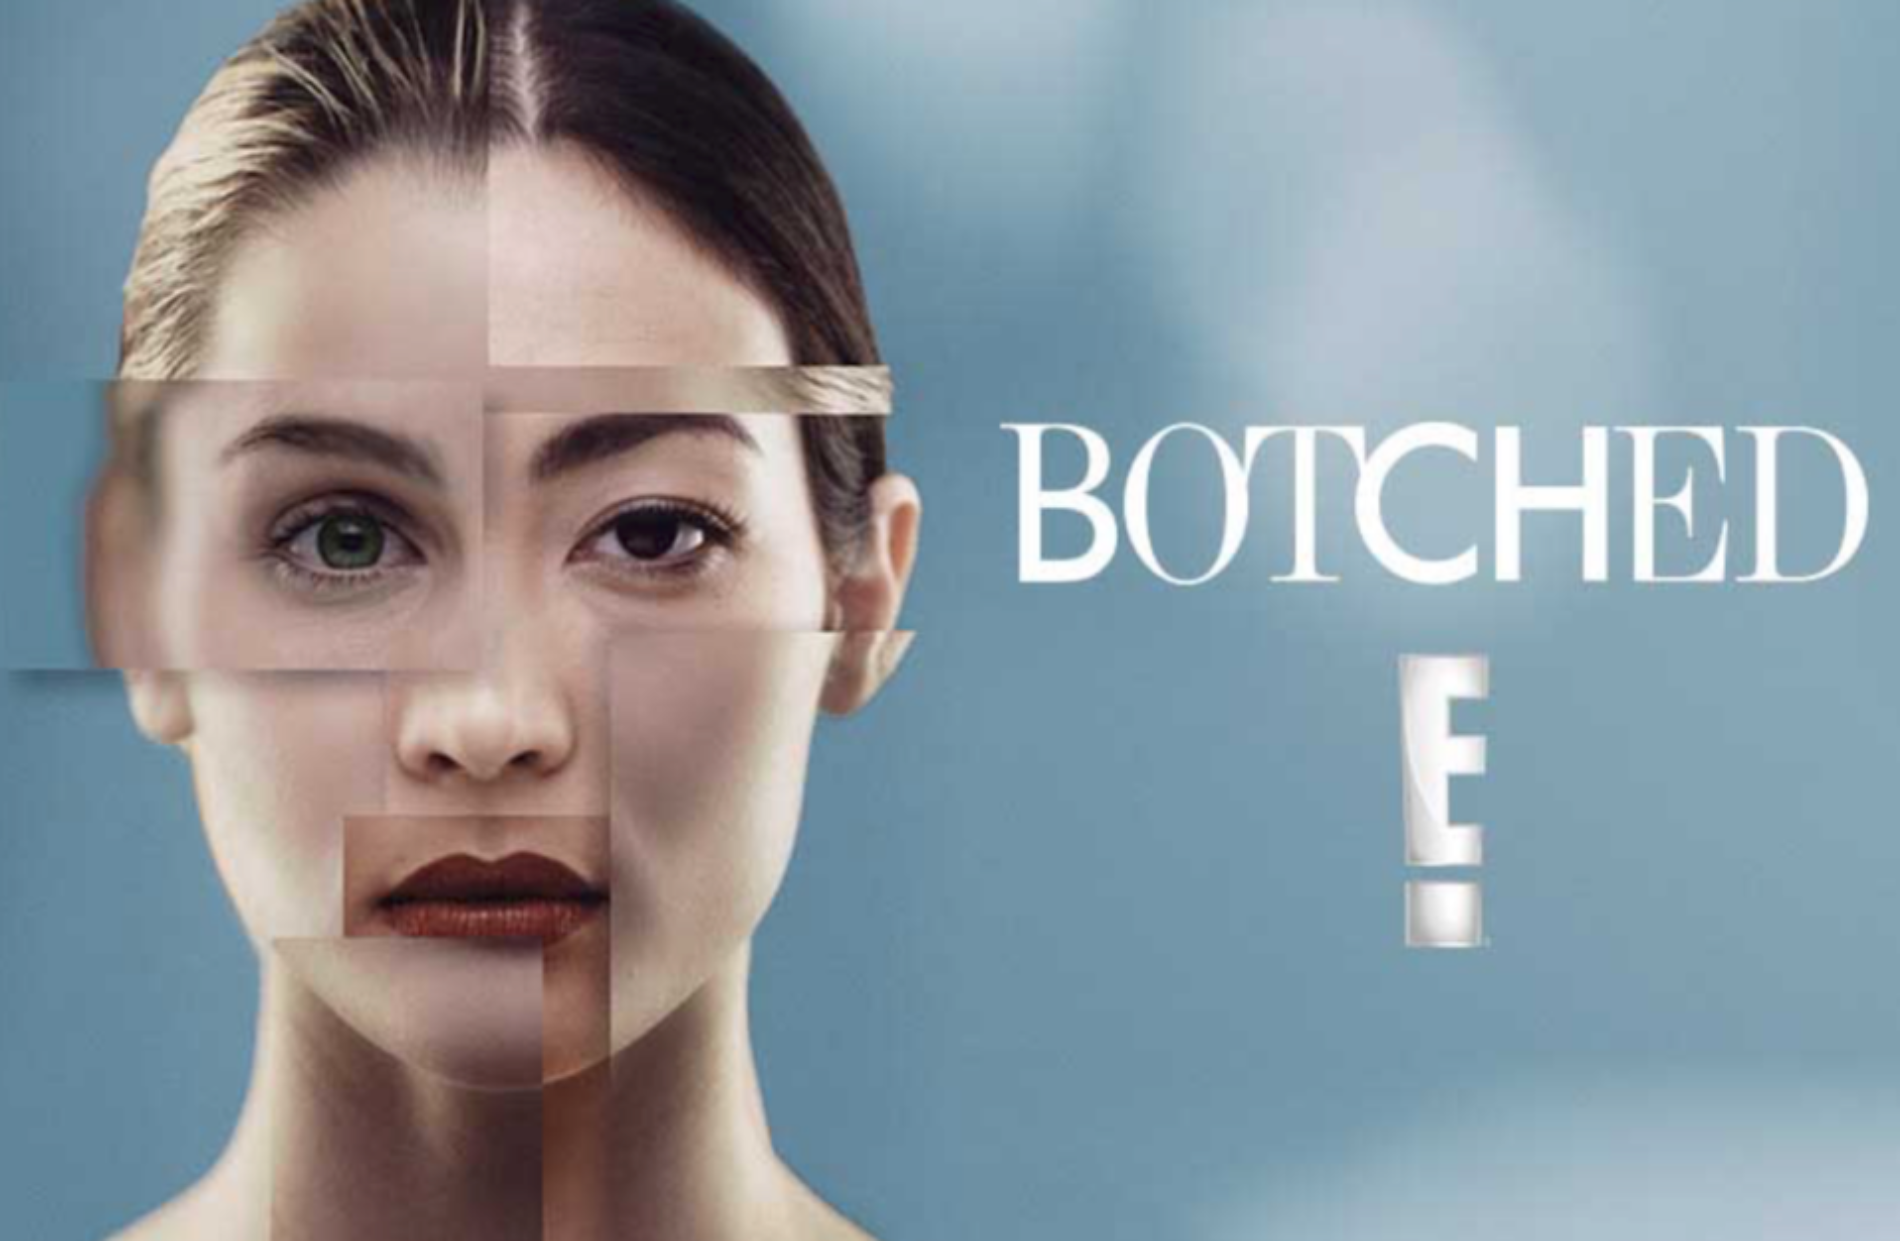 UNA NUEVA TEMPORADA DE ¨BOTCHED¨ POR E! ENTERTAINMET